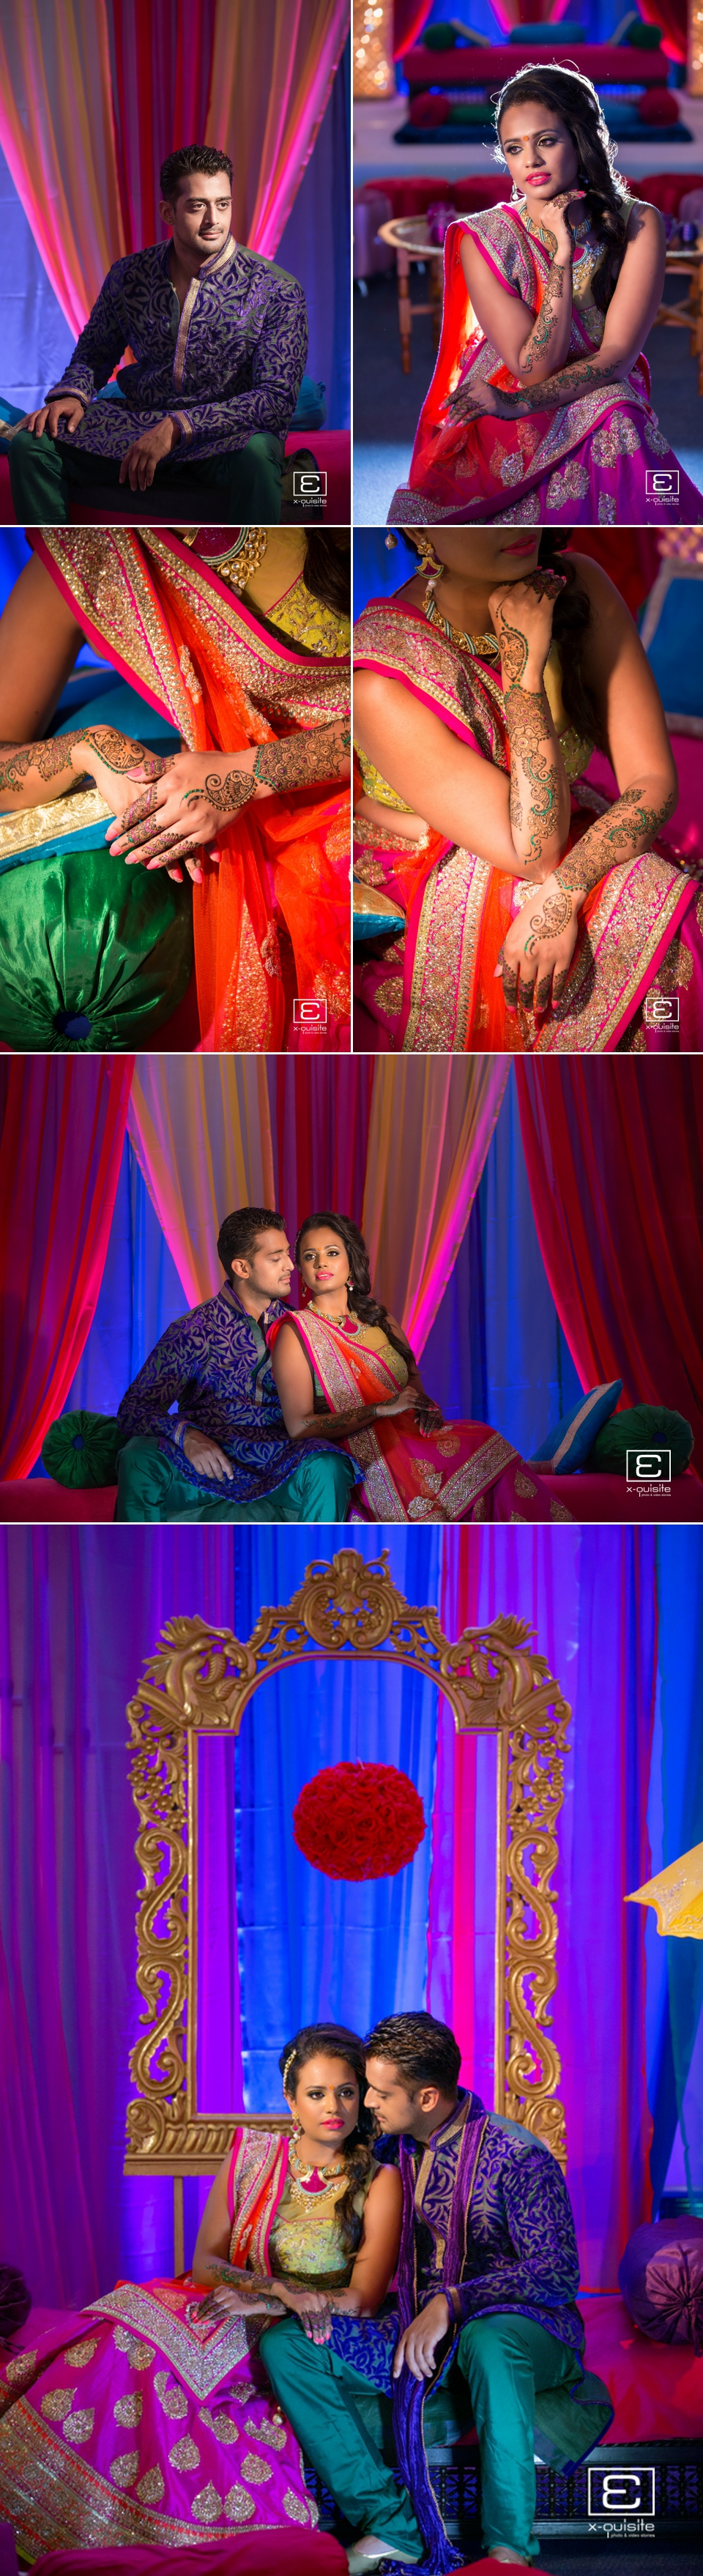 Newland-Manor-Hindu-Wedding_04